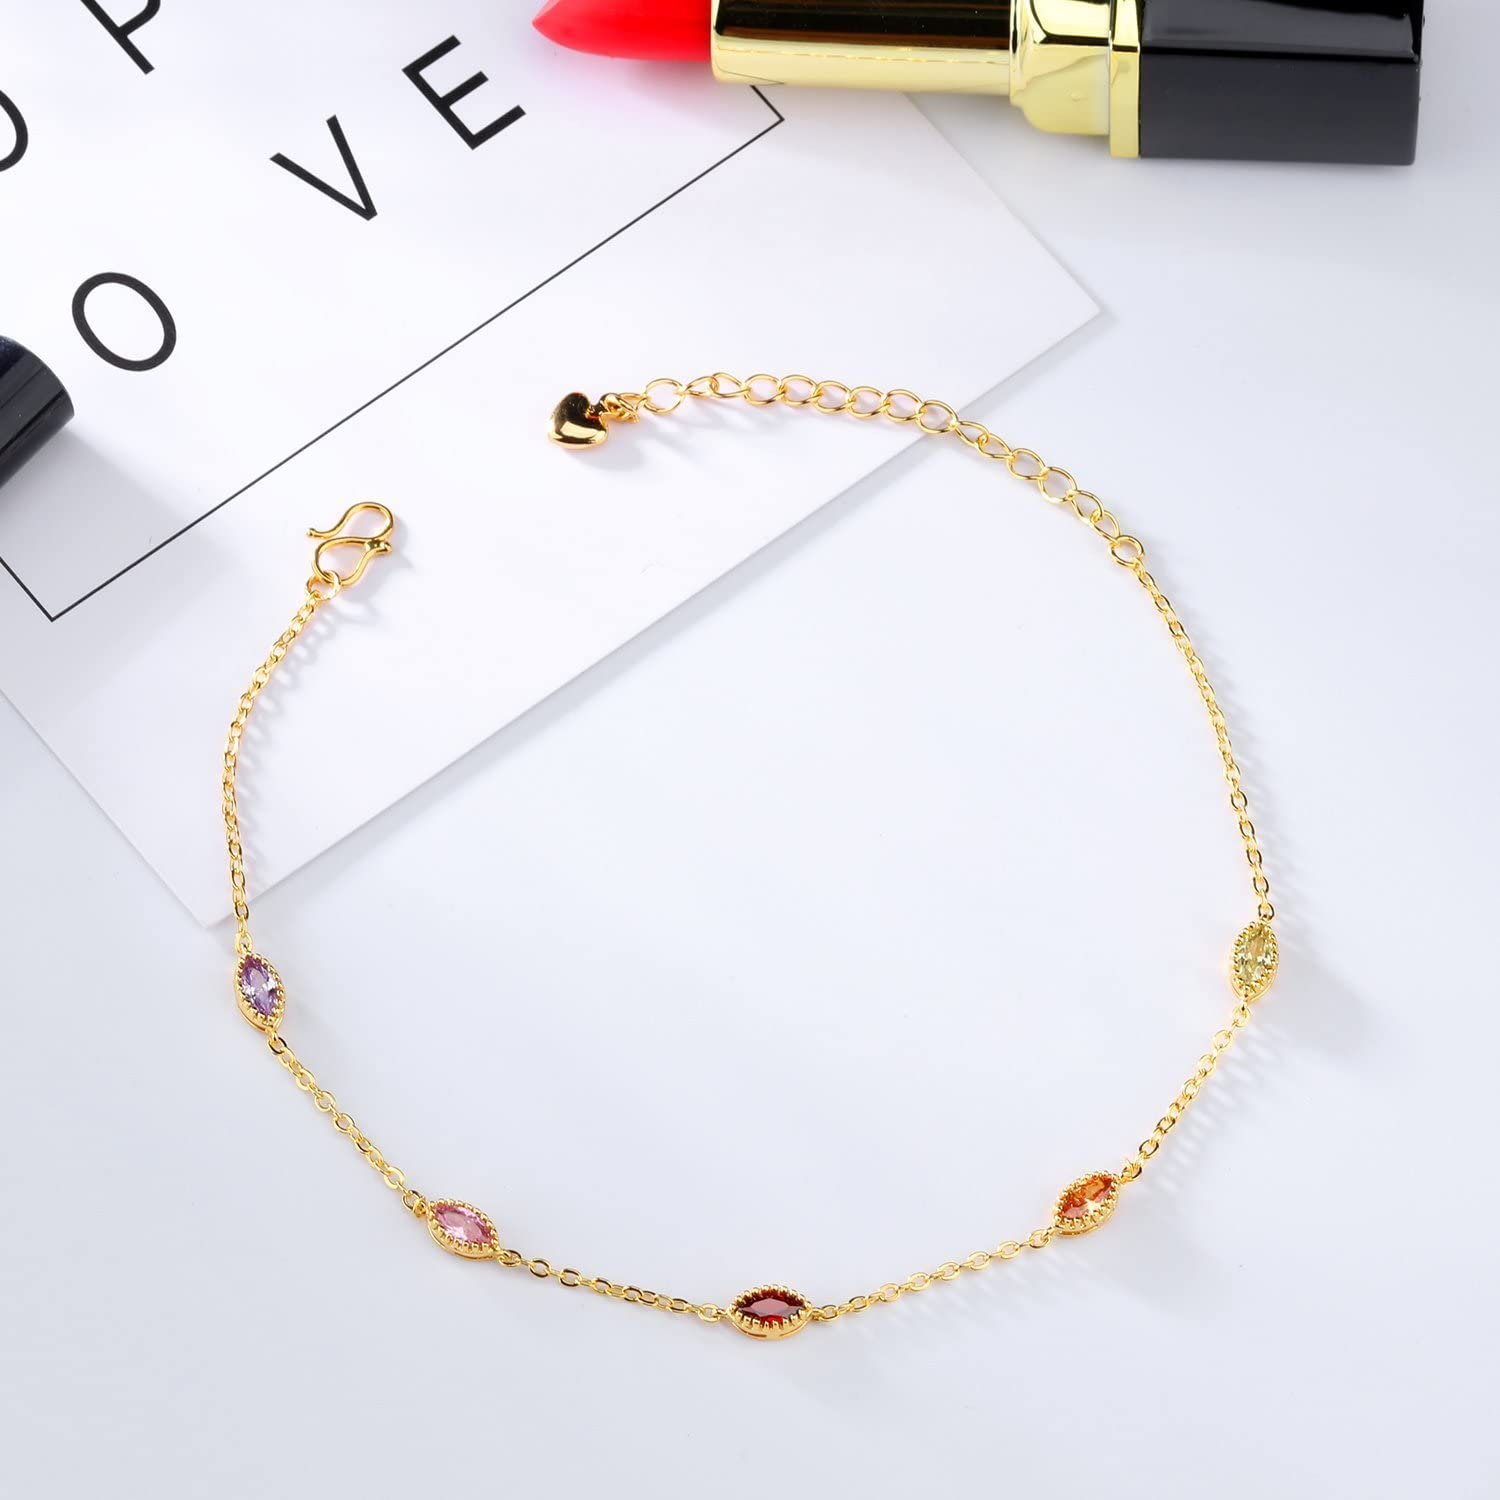 JAJAFOOK 18K Gold Plated Anklet Bracelet With Colorful Crystal Stone Women Barefoot Sandal Beach Jewelry